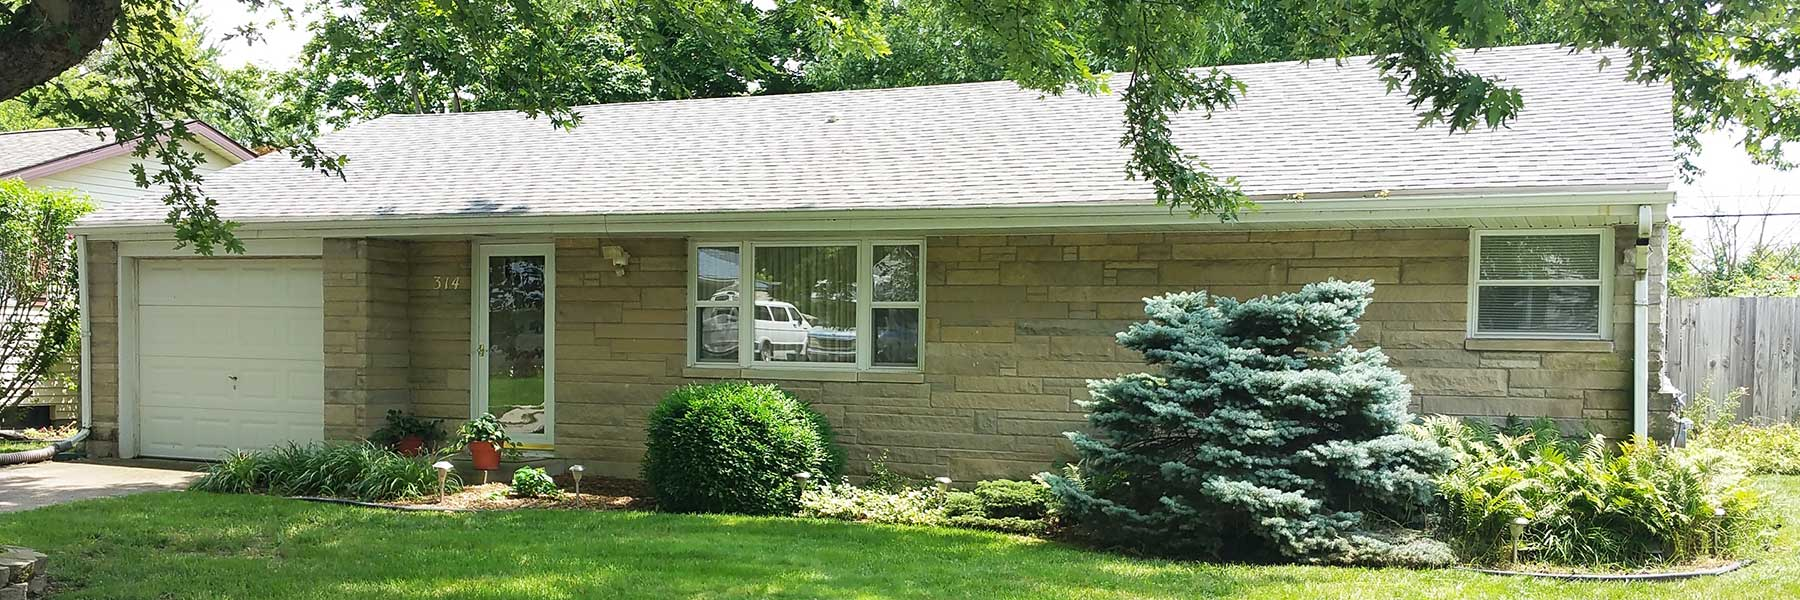 property for sale by mark in Indiana